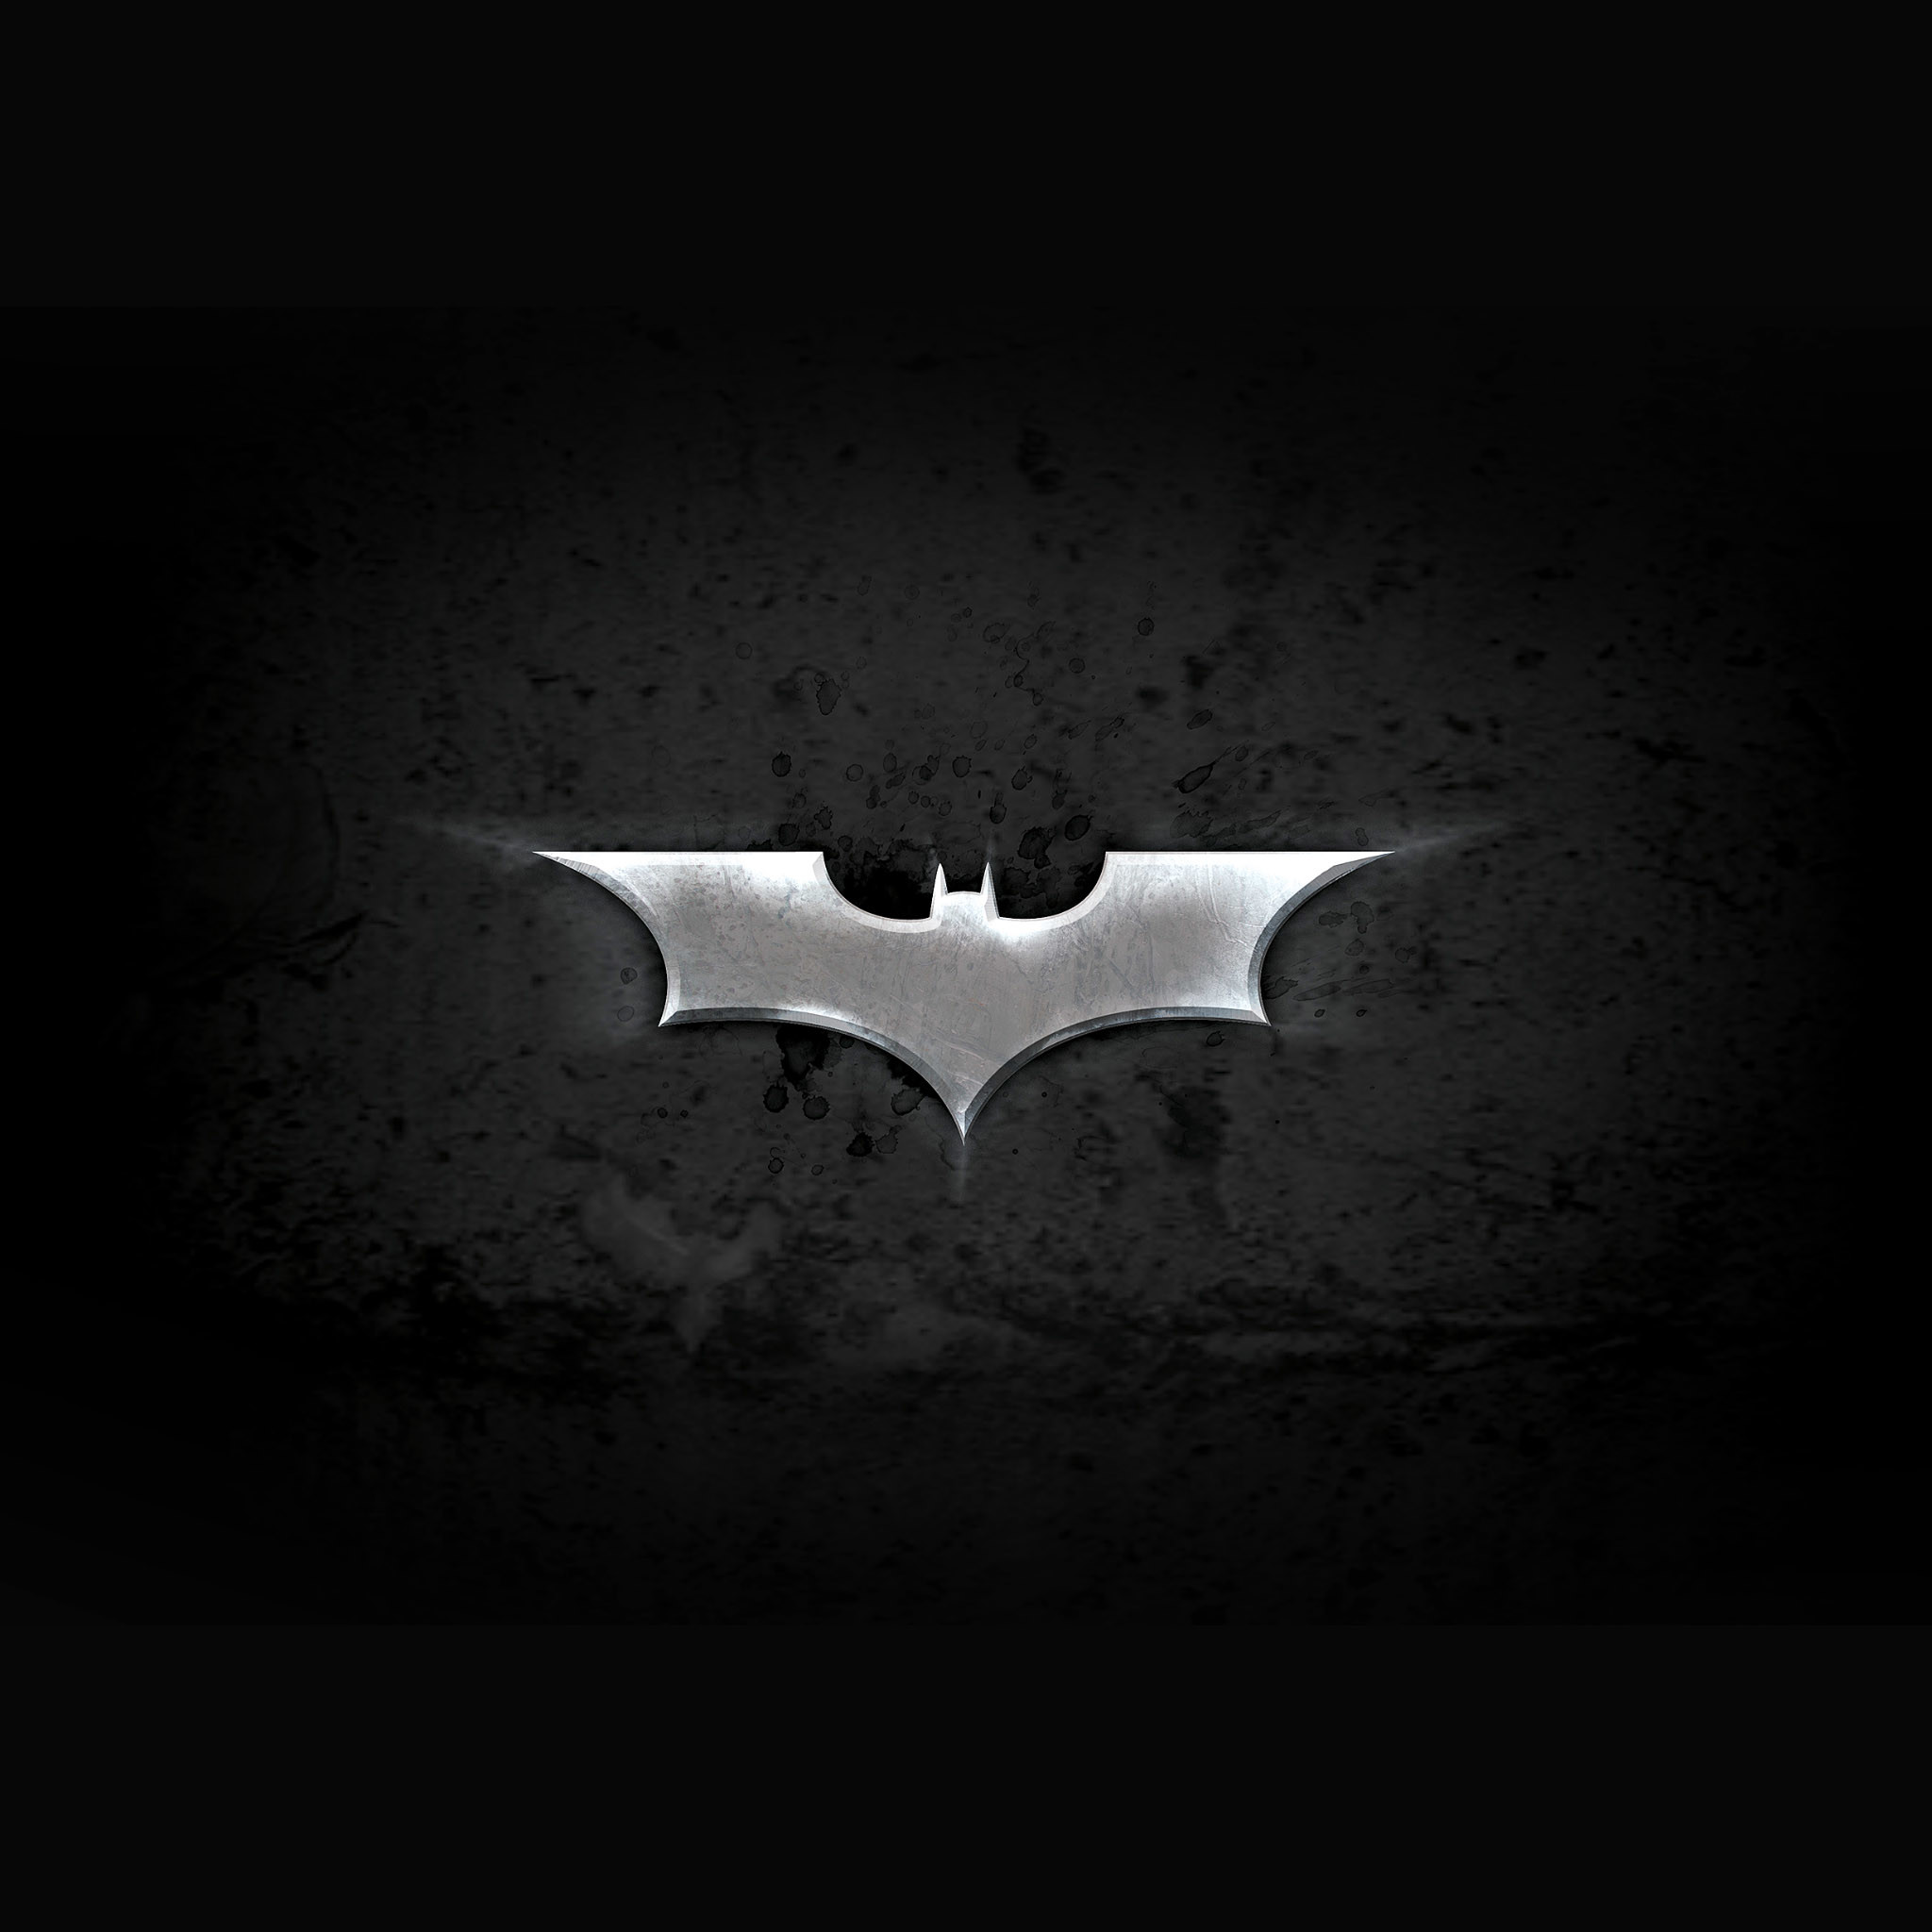 2048x2048 FREEIOS7 | i-am-batman - parallax HD iPhone iPad wallpaper